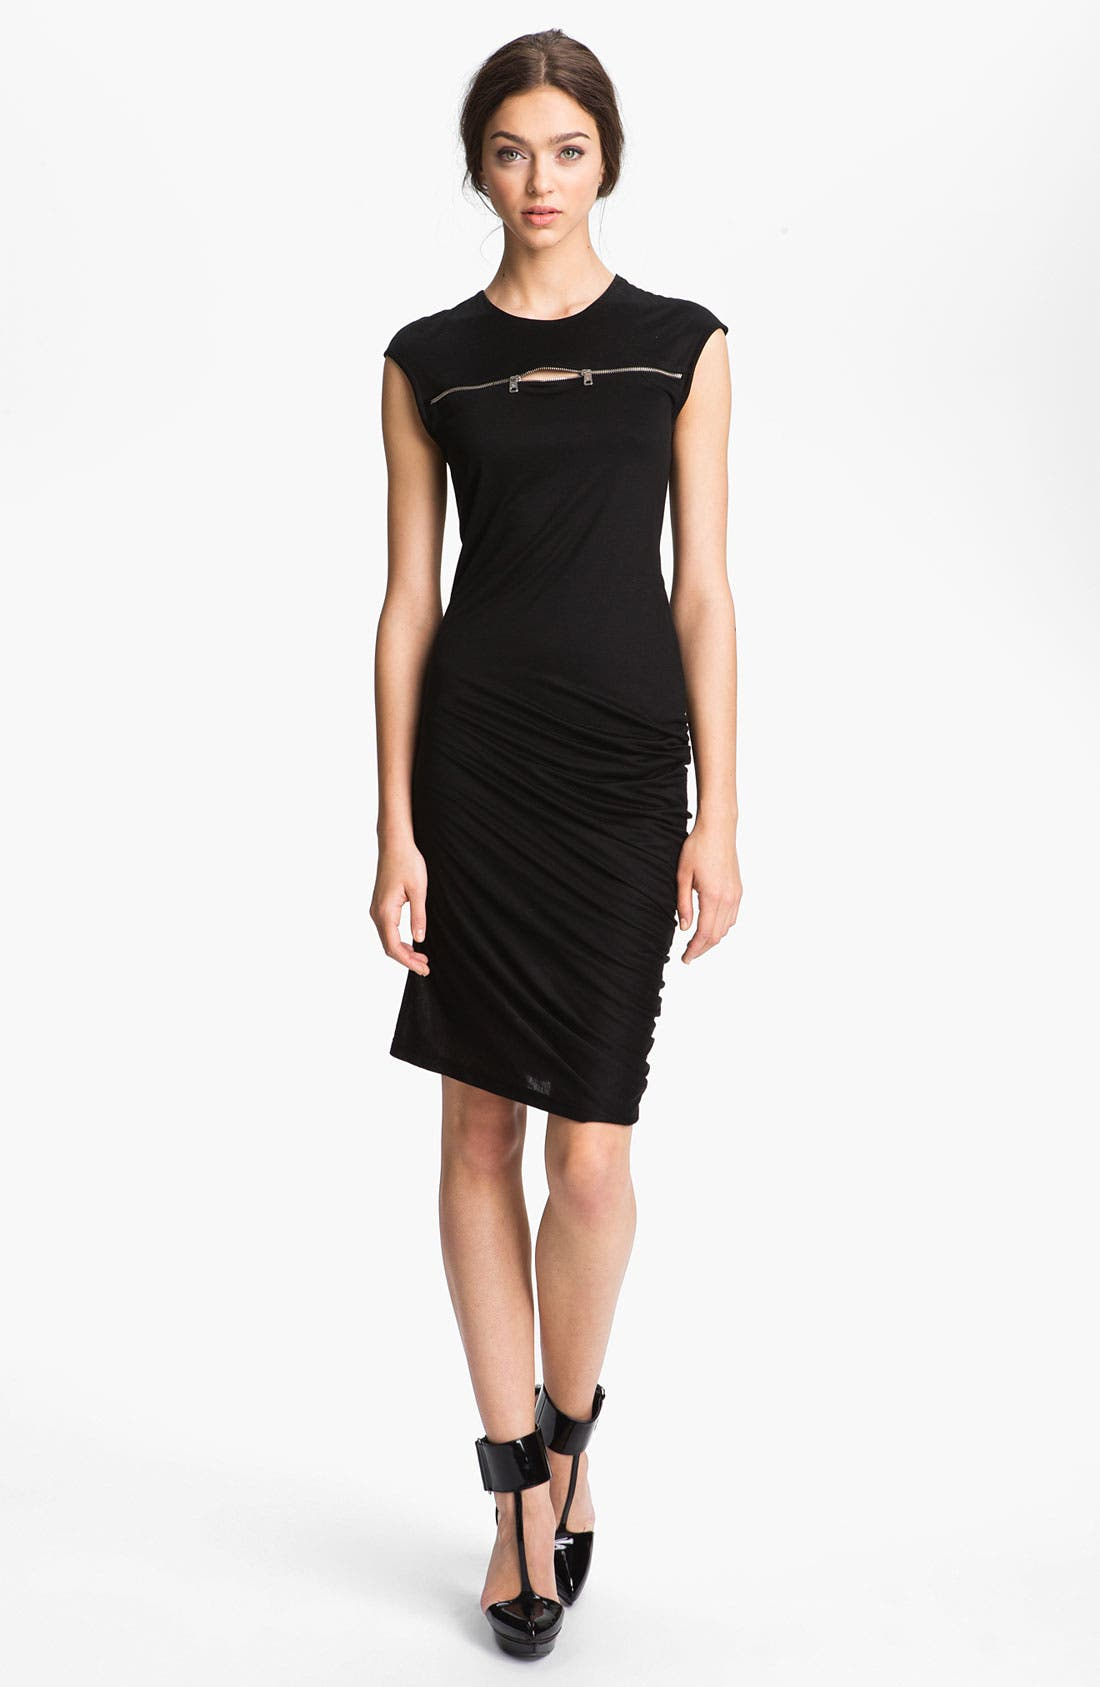 Alternate Image 1 Selected - McQ by Alexander McQueen Zip Detail Knit Dress